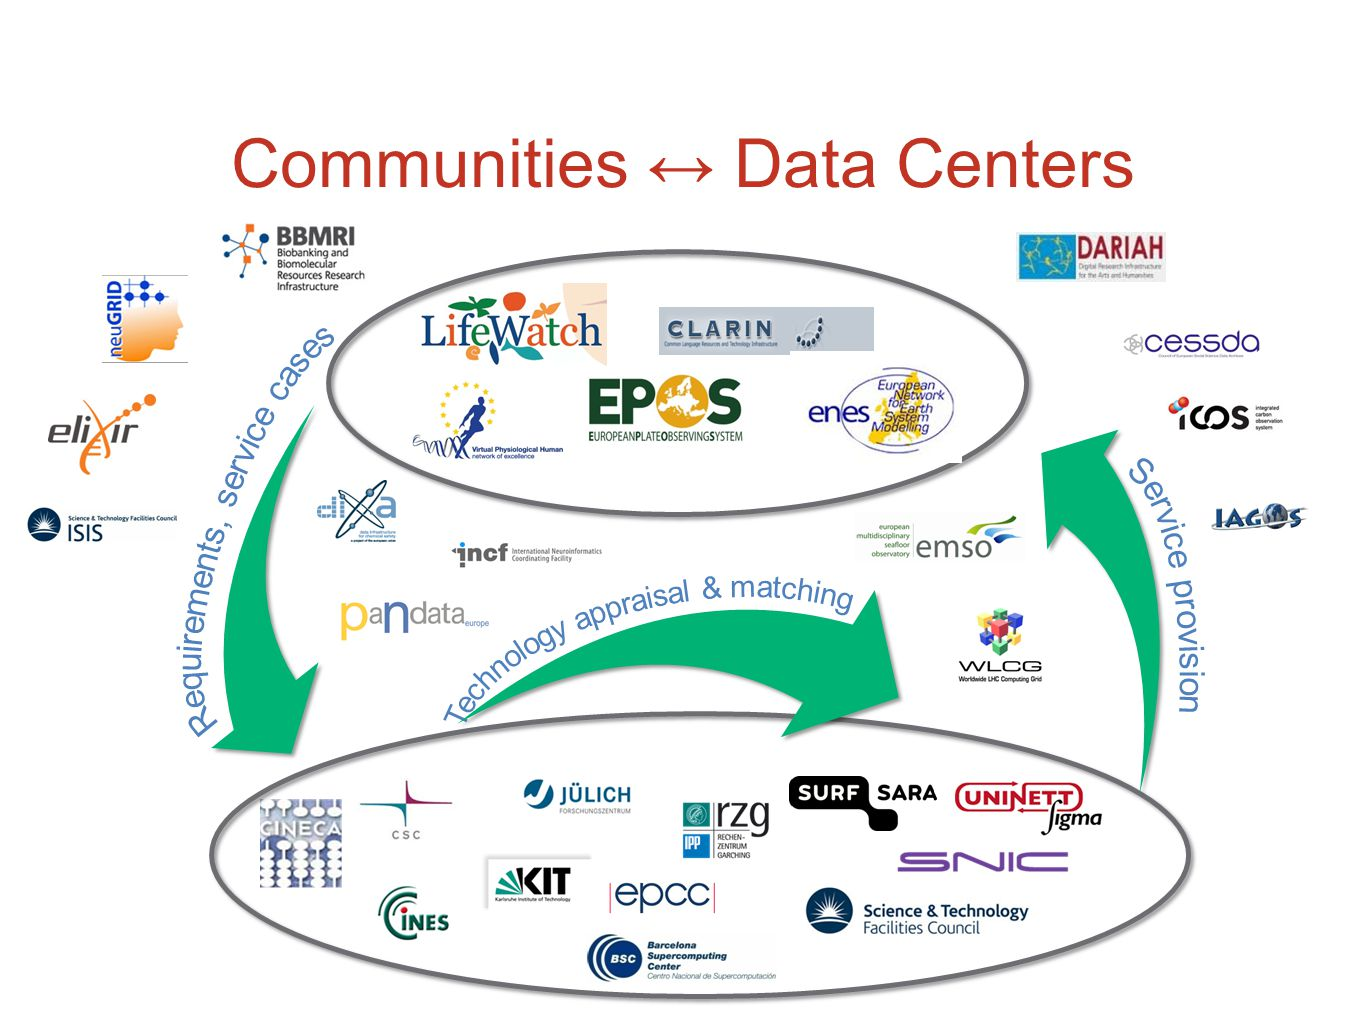 Communities ↔ Data Centers